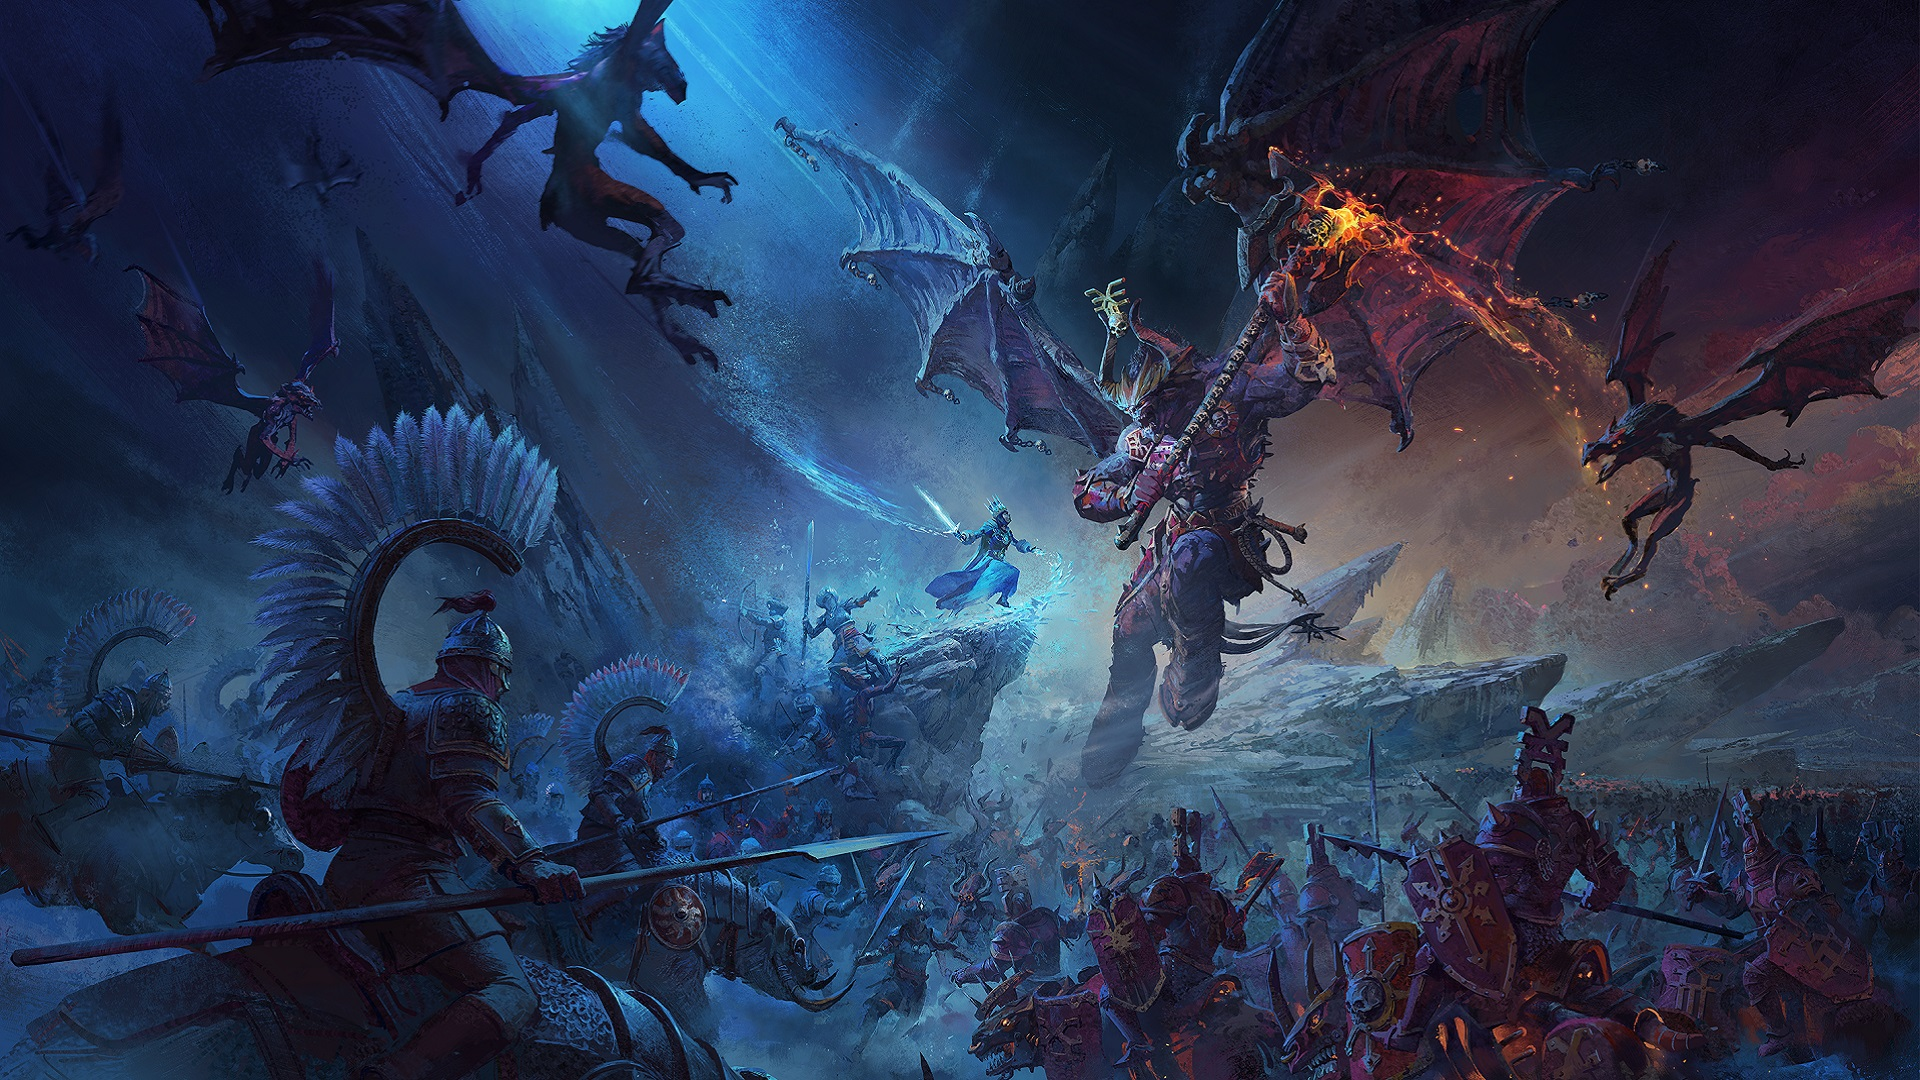 Total War: Warhammer 3 will get another race as an 'early adopter' bonus